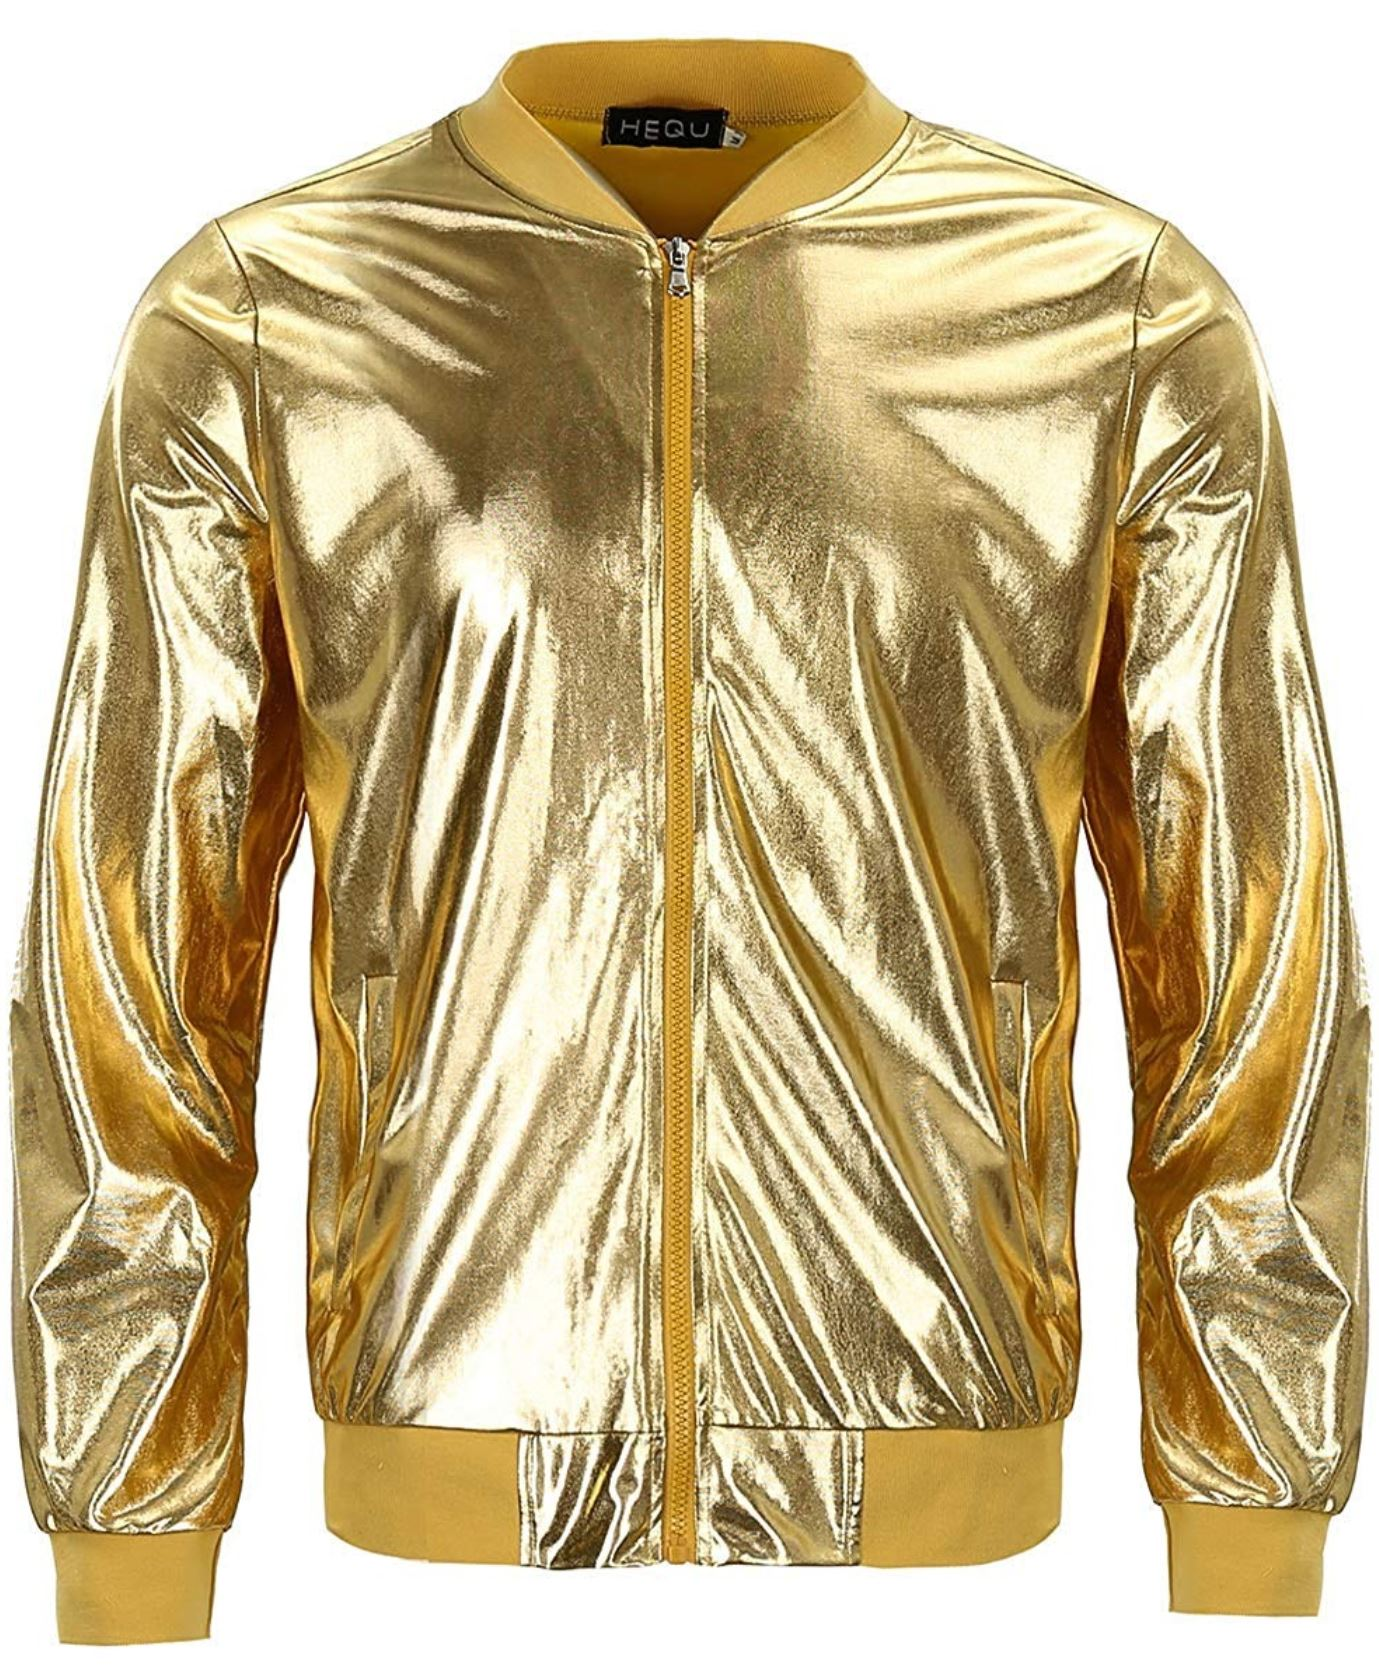 Gucci Metallic Bomber Jacket from amazon.com